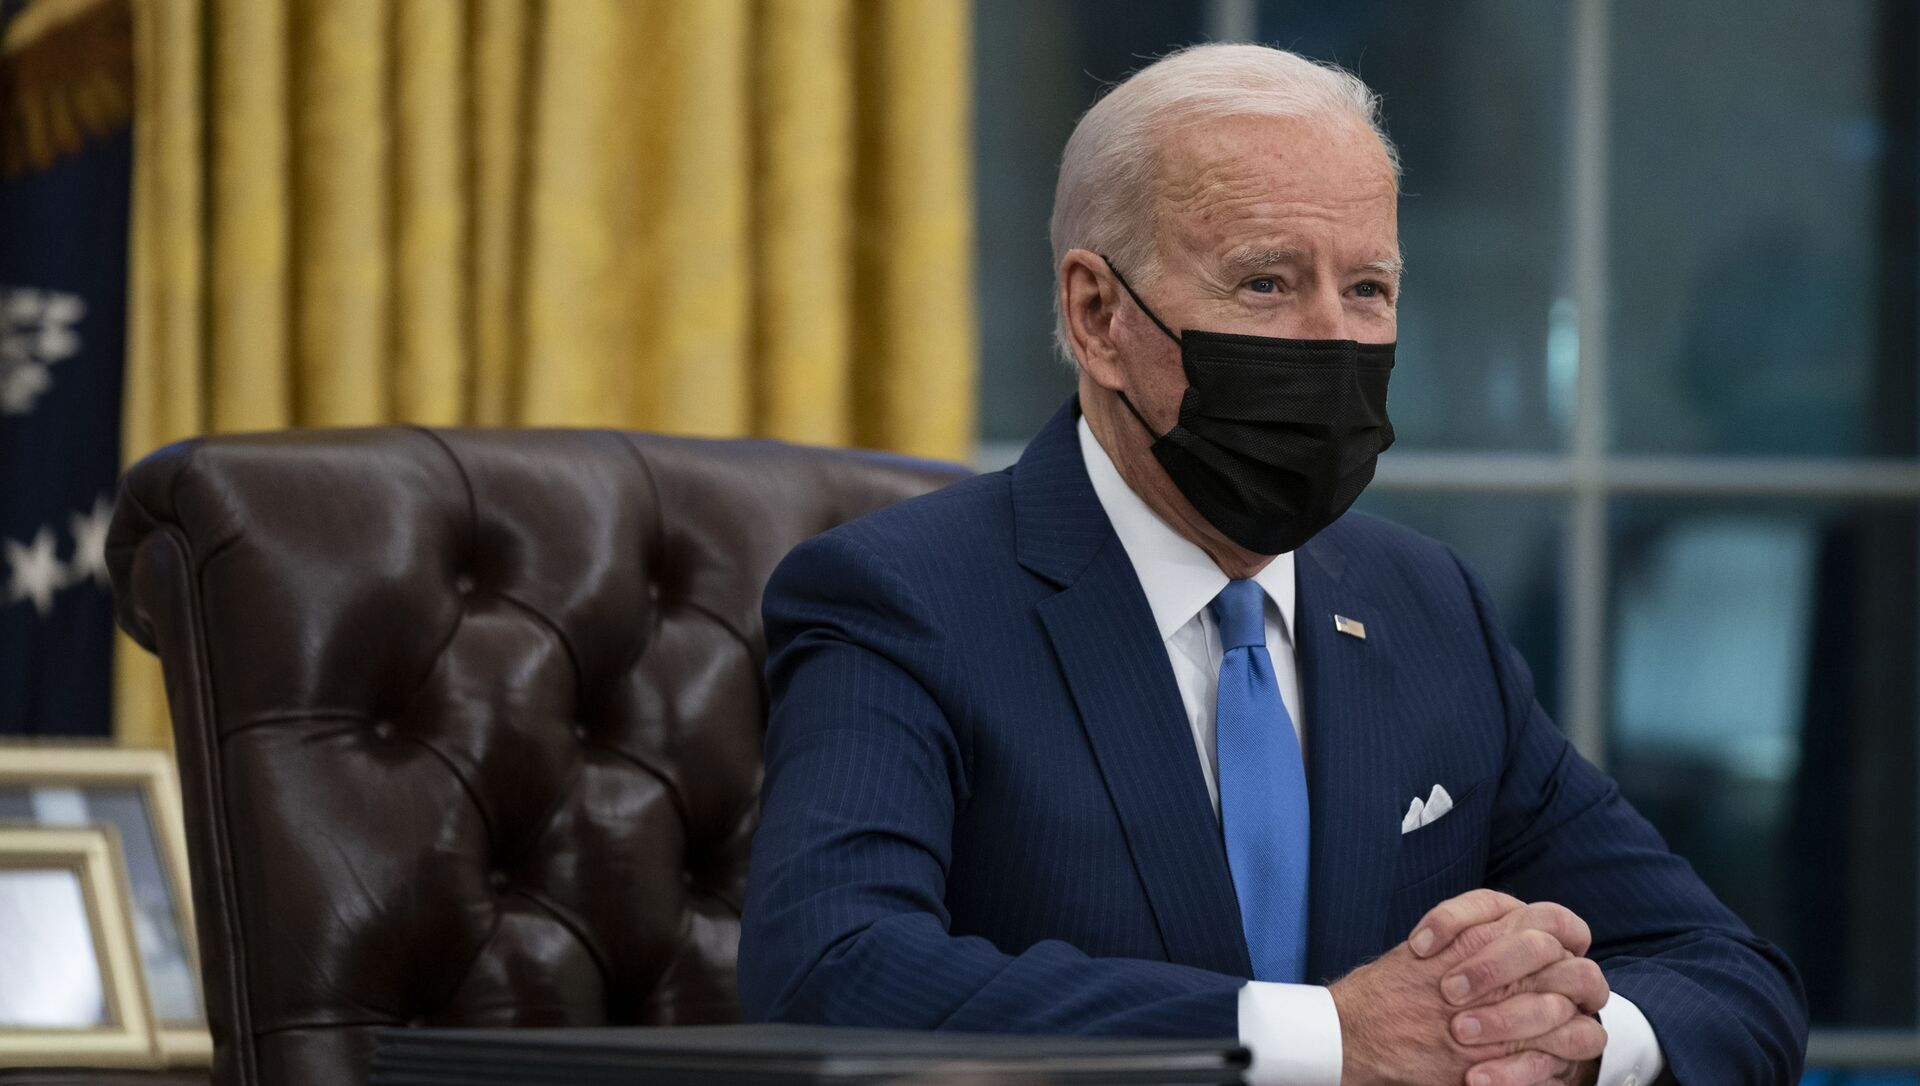 President Joe Biden delivers remarks on immigration, in the Oval Office of the White House, Tuesday, Feb. 2, 2021, in Washington. - Sputnik Italia, 1920, 09.03.2021